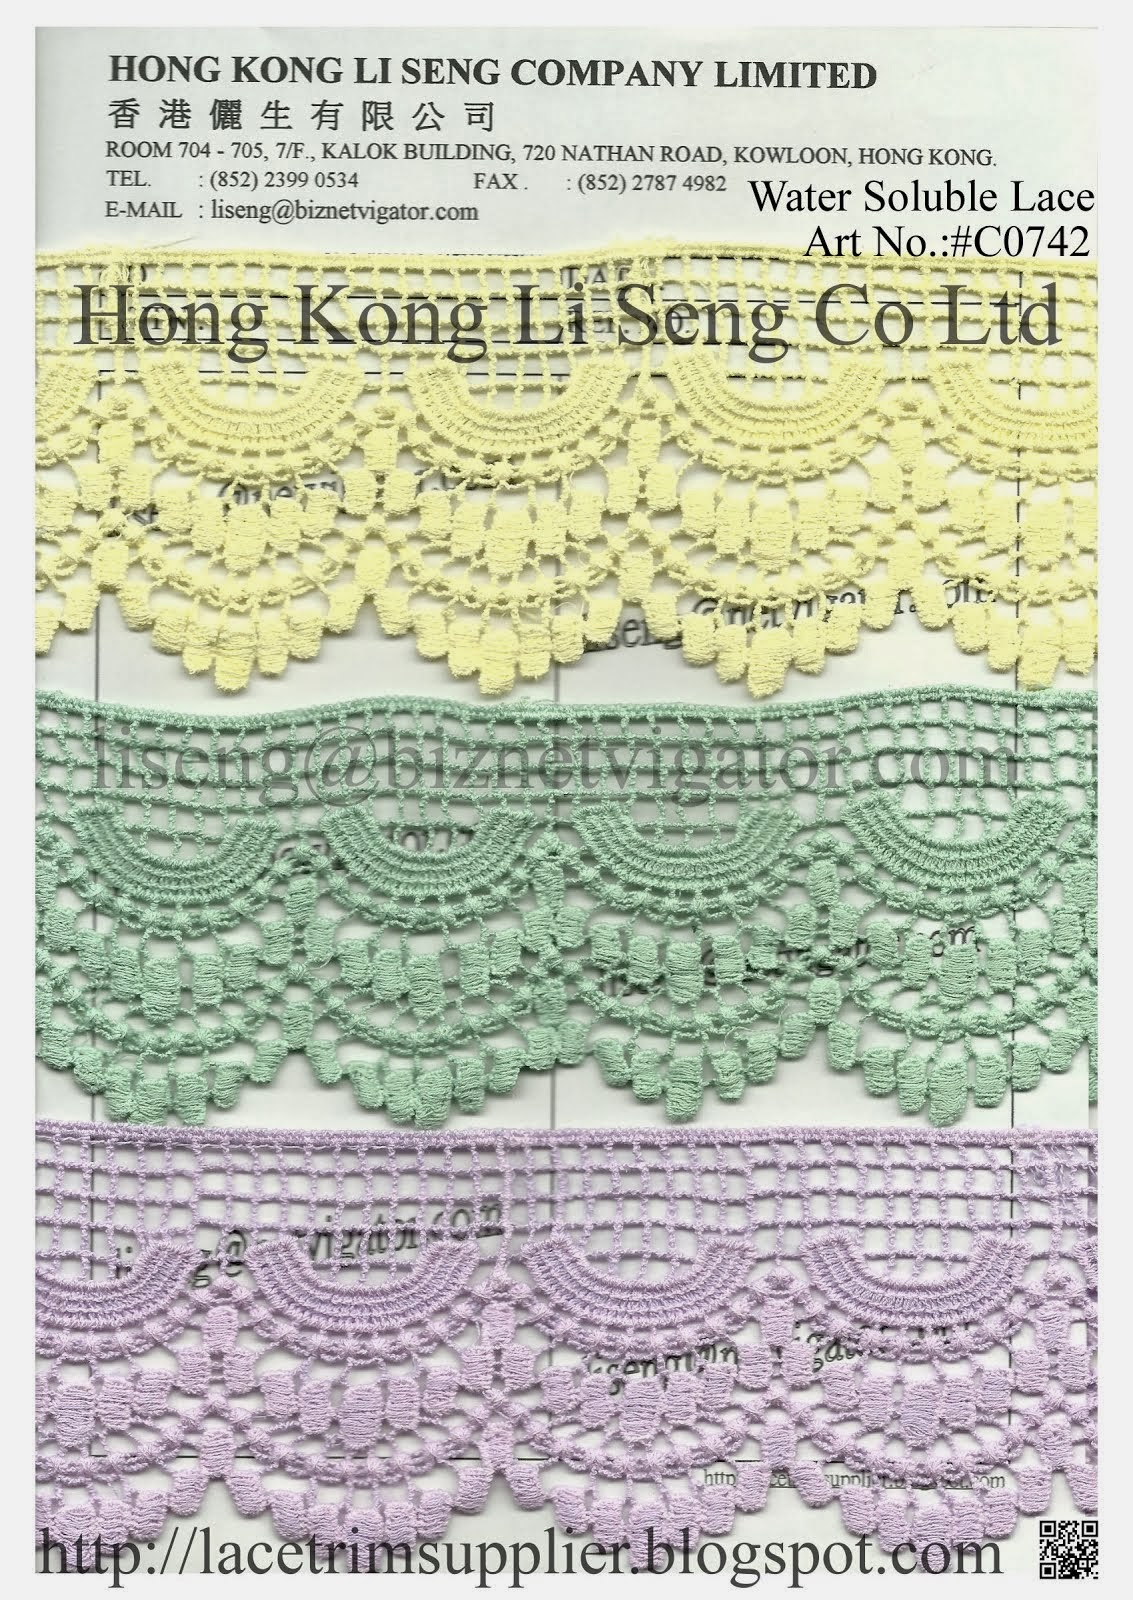 Dye to Match - Cotton Lace and Trims Manufacturer Wholesale Supplier - Hong Kong Li Seng Co Ltd